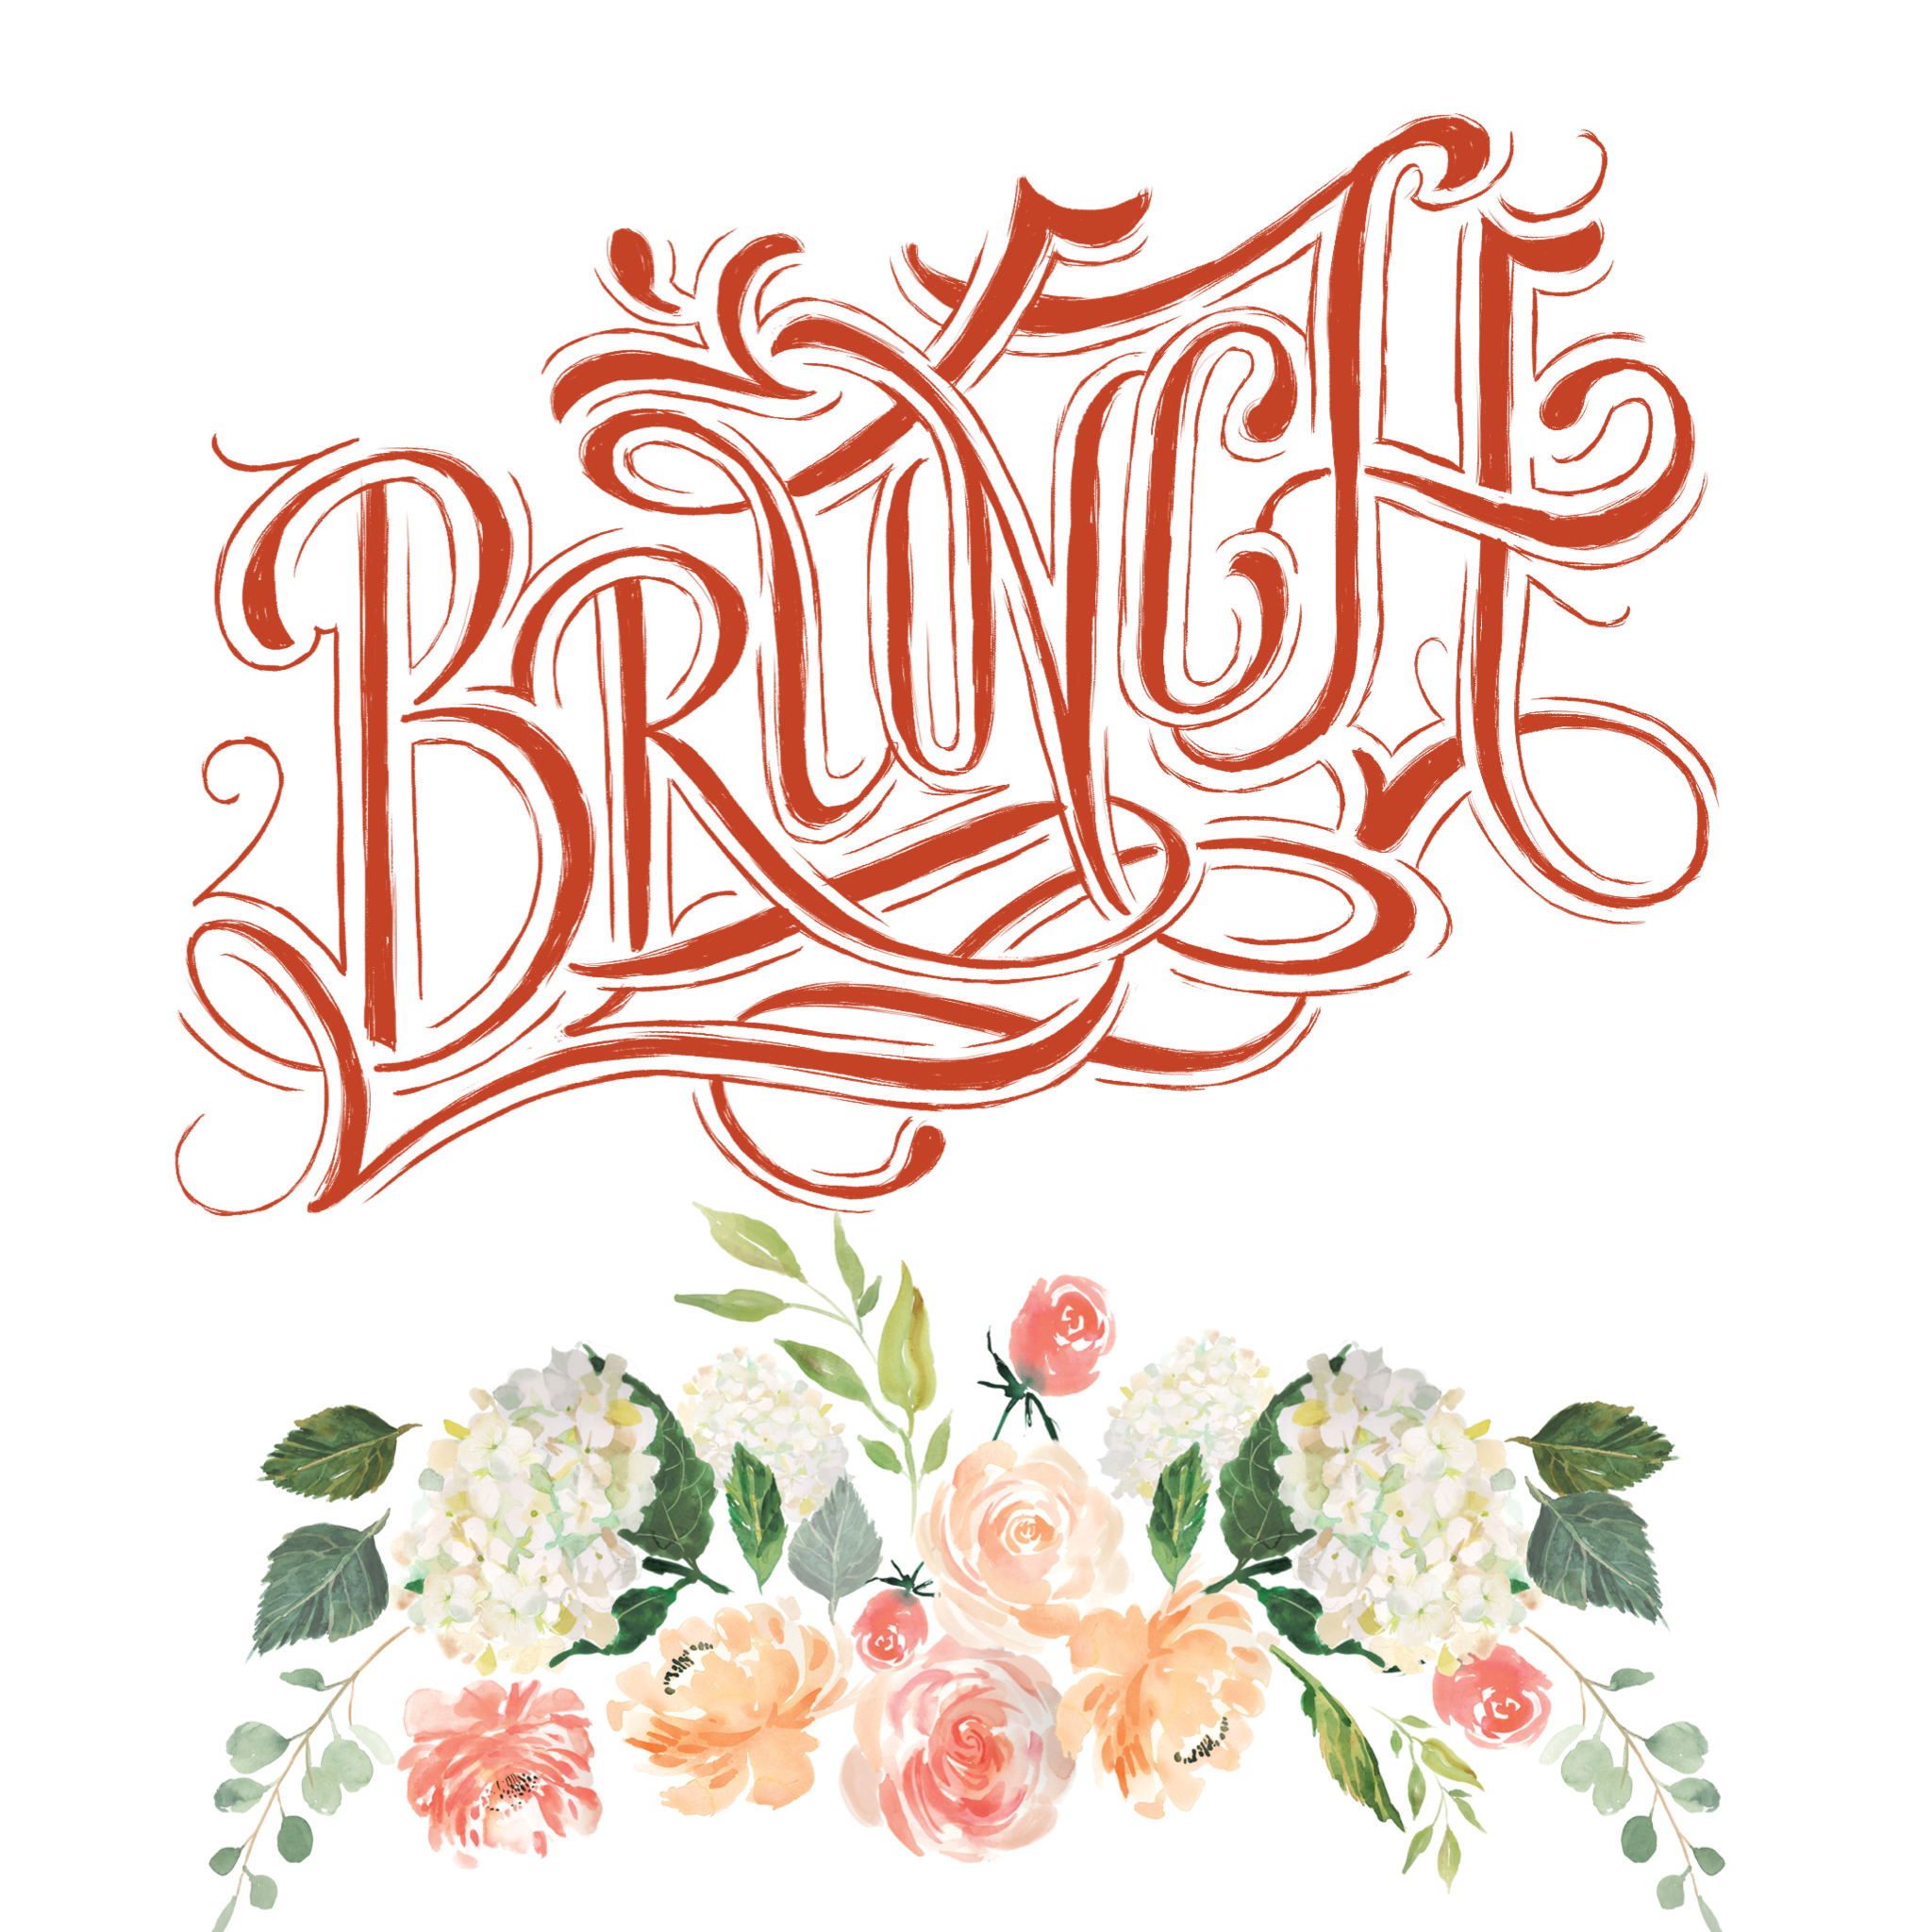 clip art library download For a greater good. Brunch clipart meal time